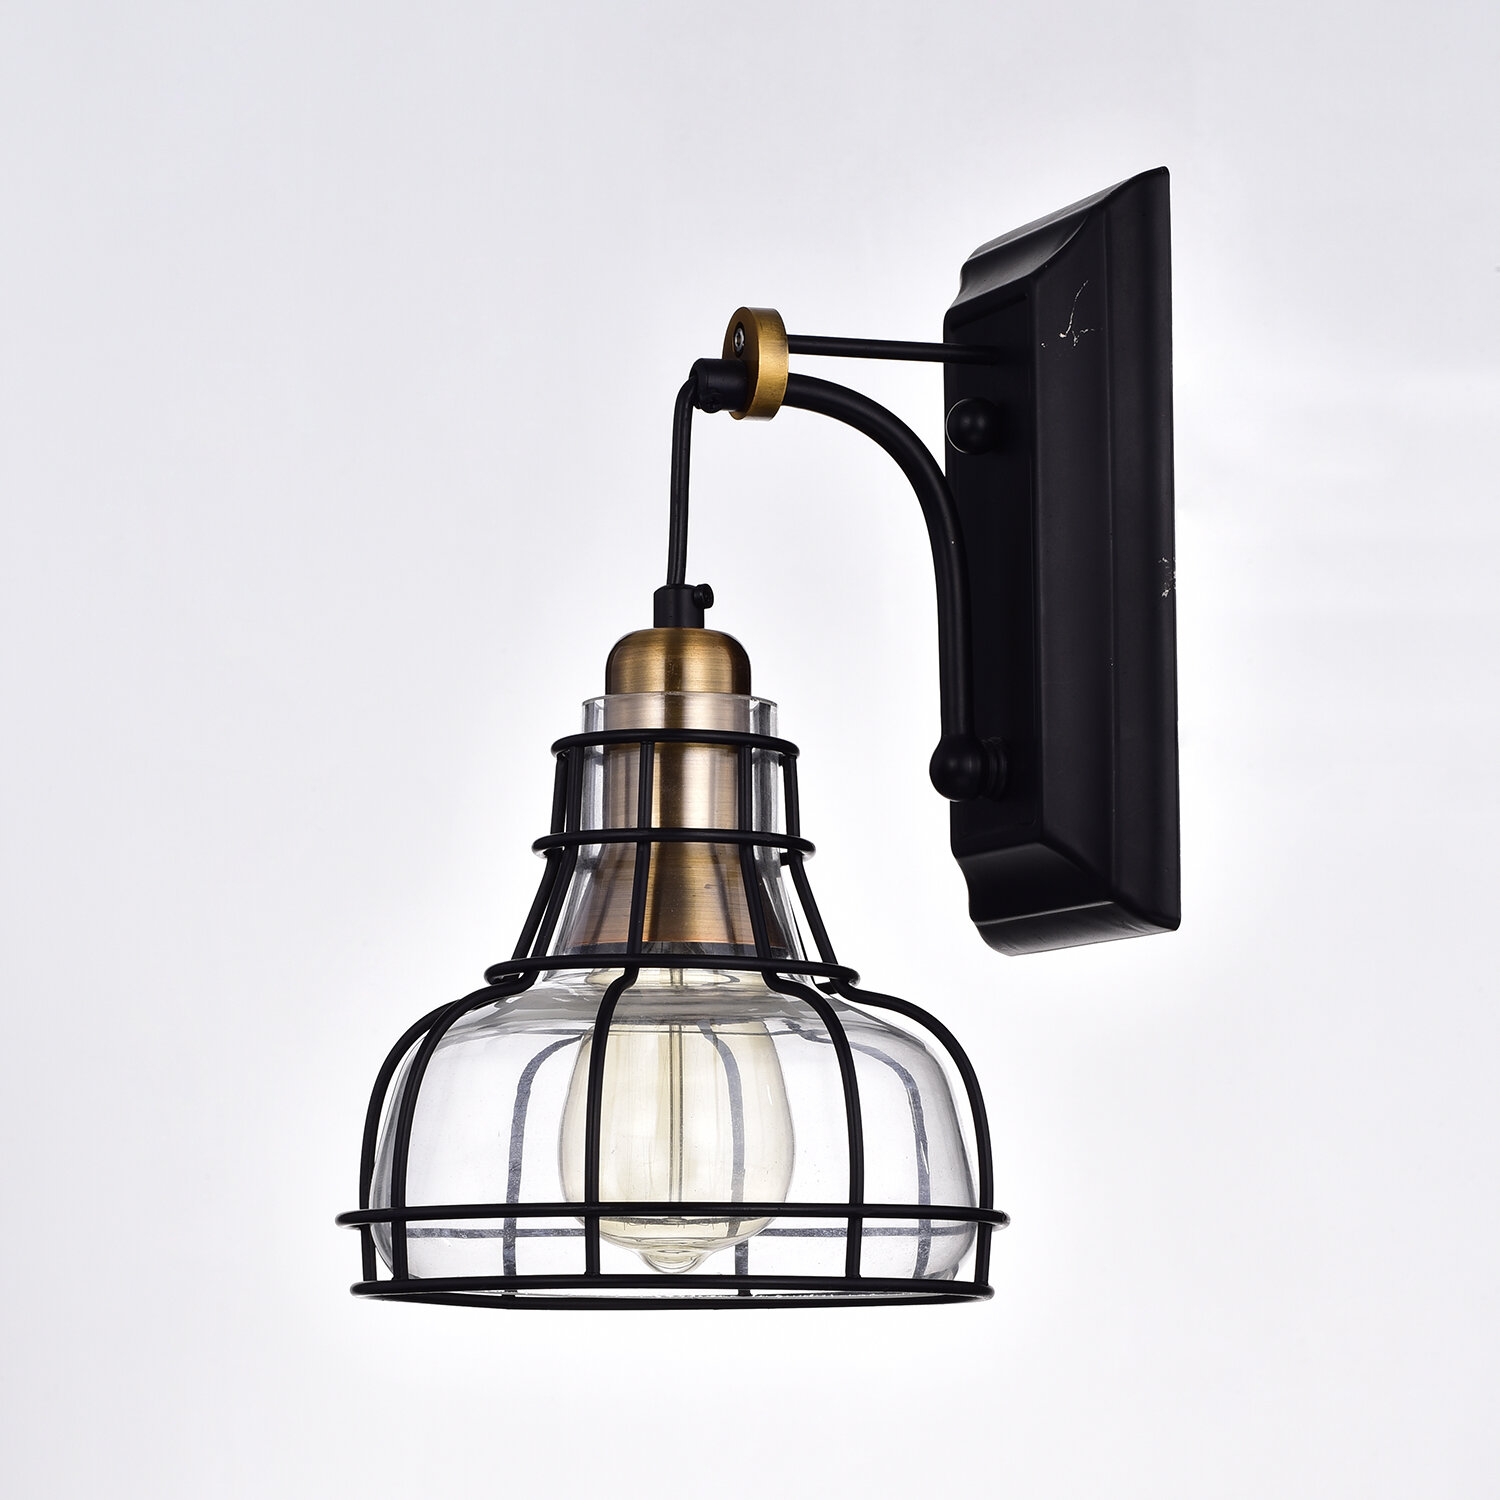 Williston Forge Sealey Indoor 1 Light Armed Sconce Reviews Wayfair